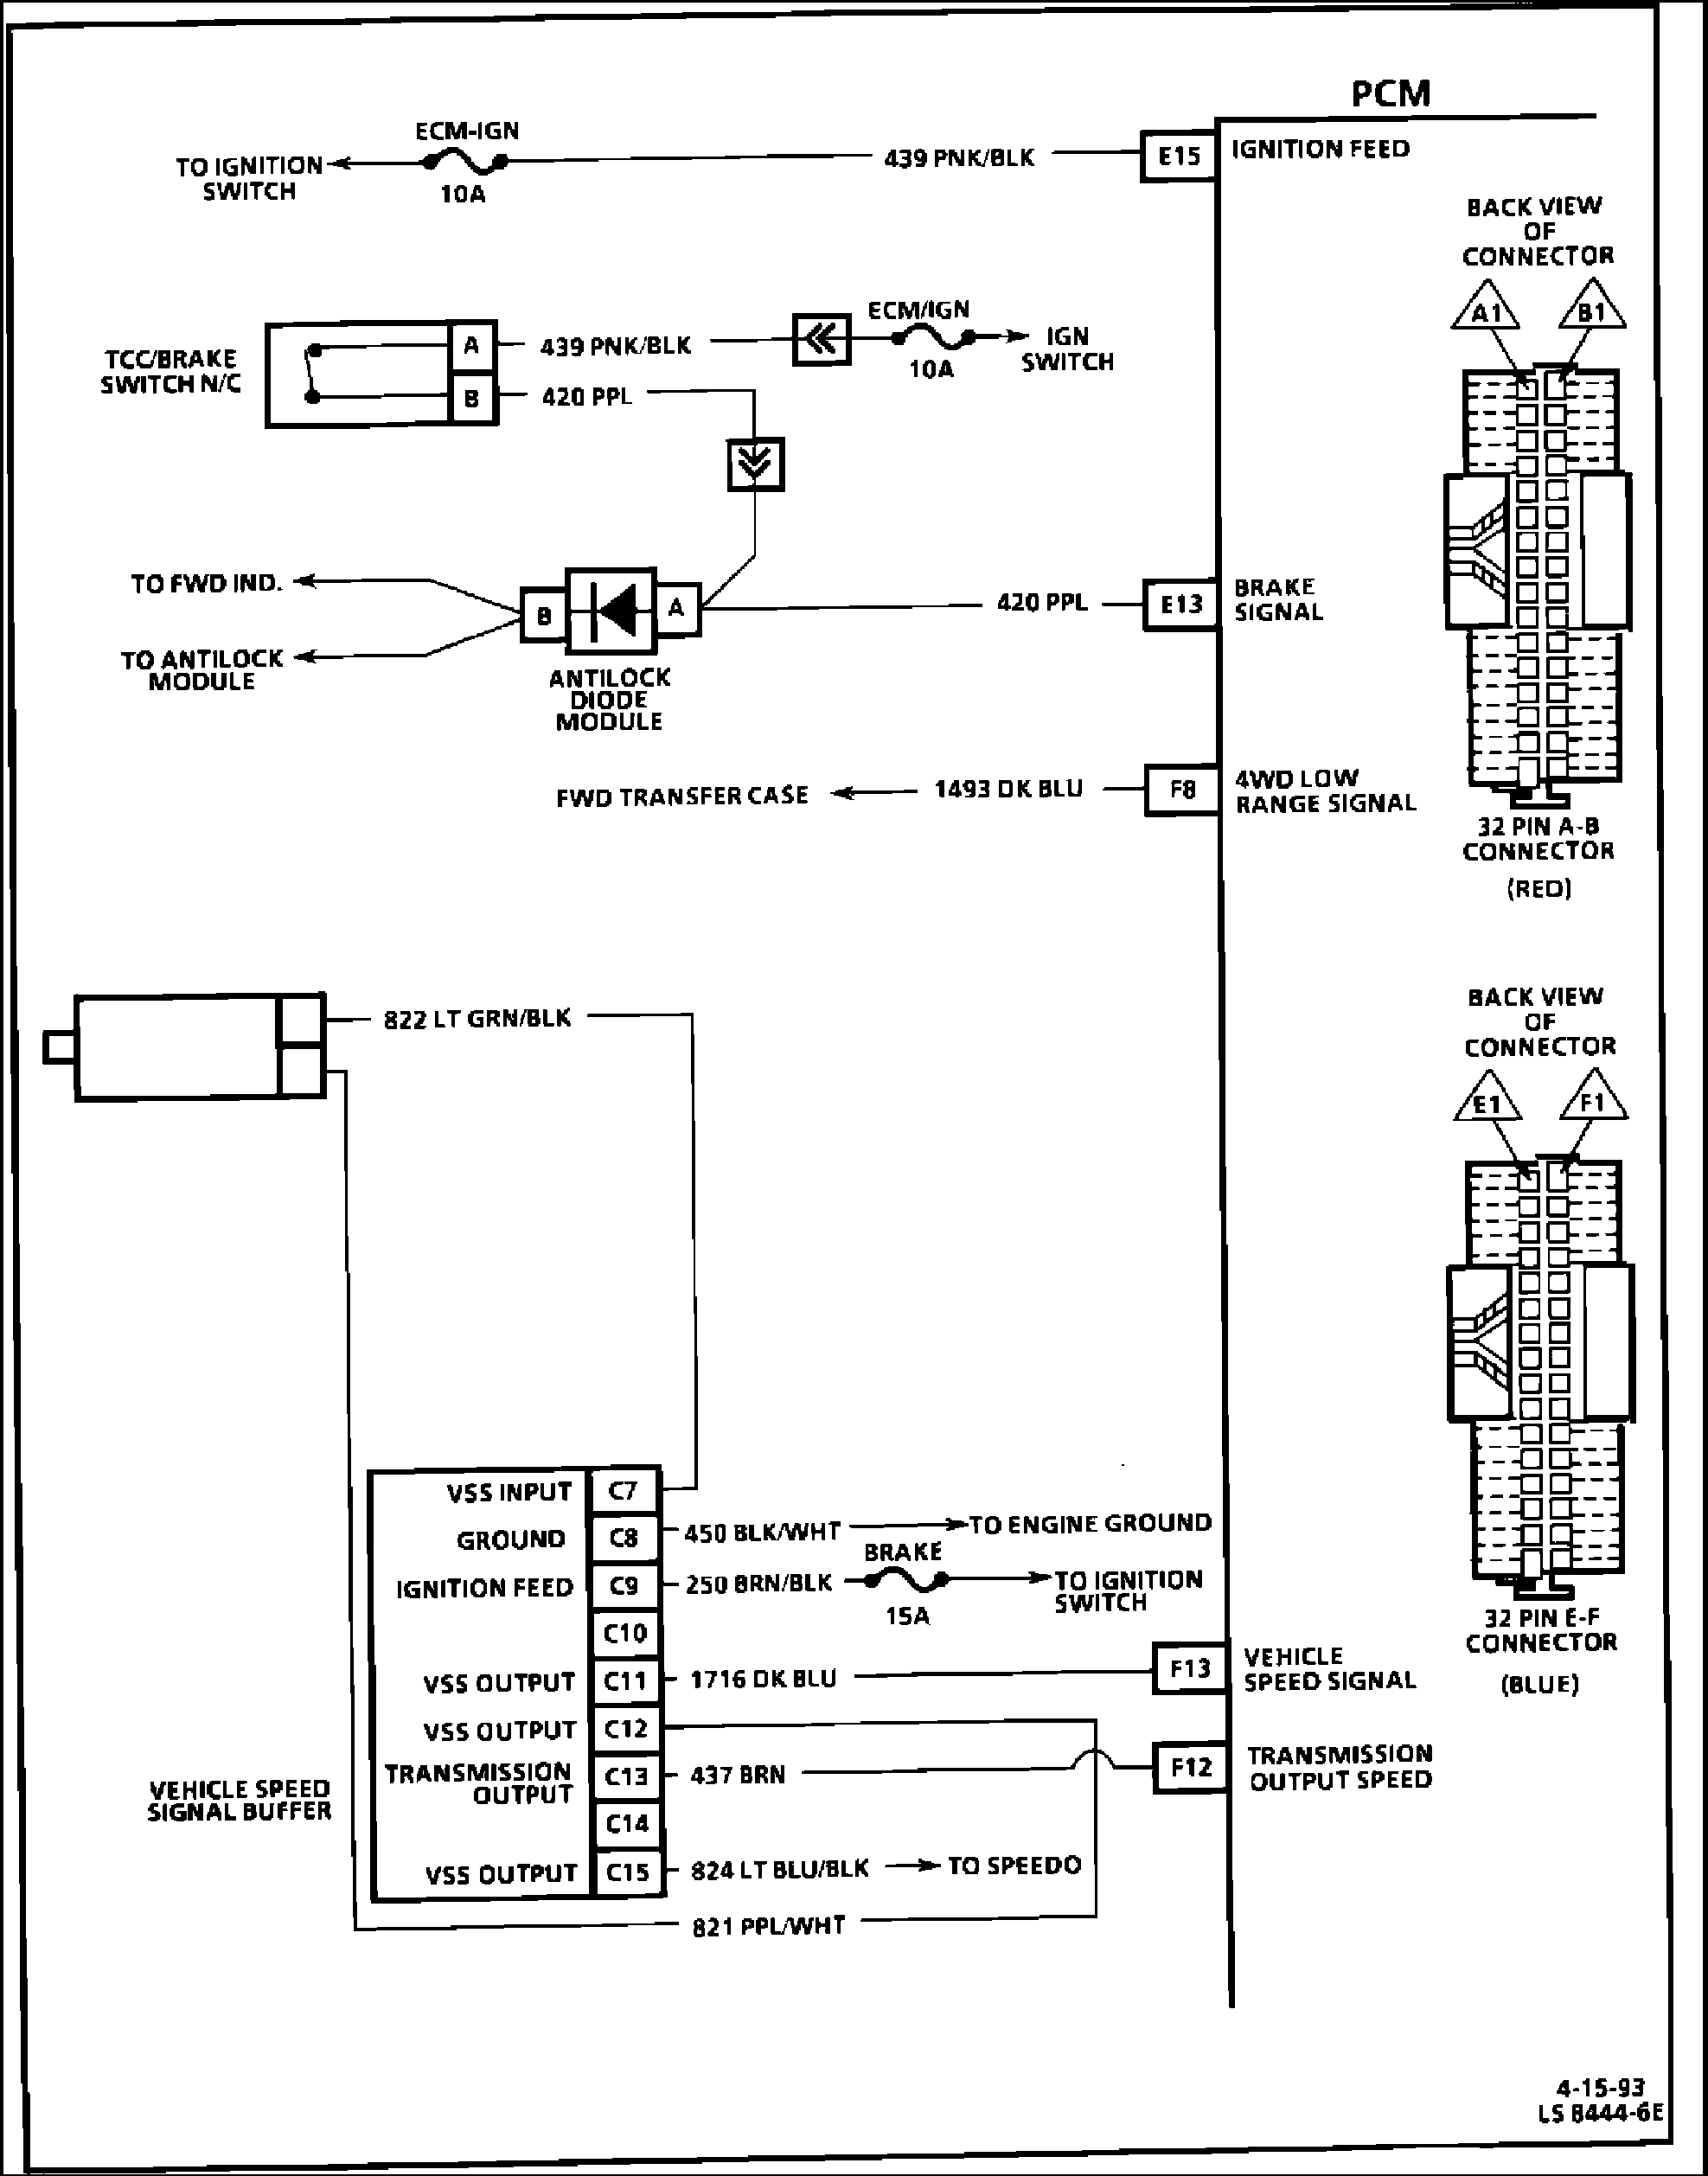 electrolux vacuum wiring diagram Download-1747 Electrolux Vacuum Wiring Diagram Nissan 350z Engine Diagram 4-s